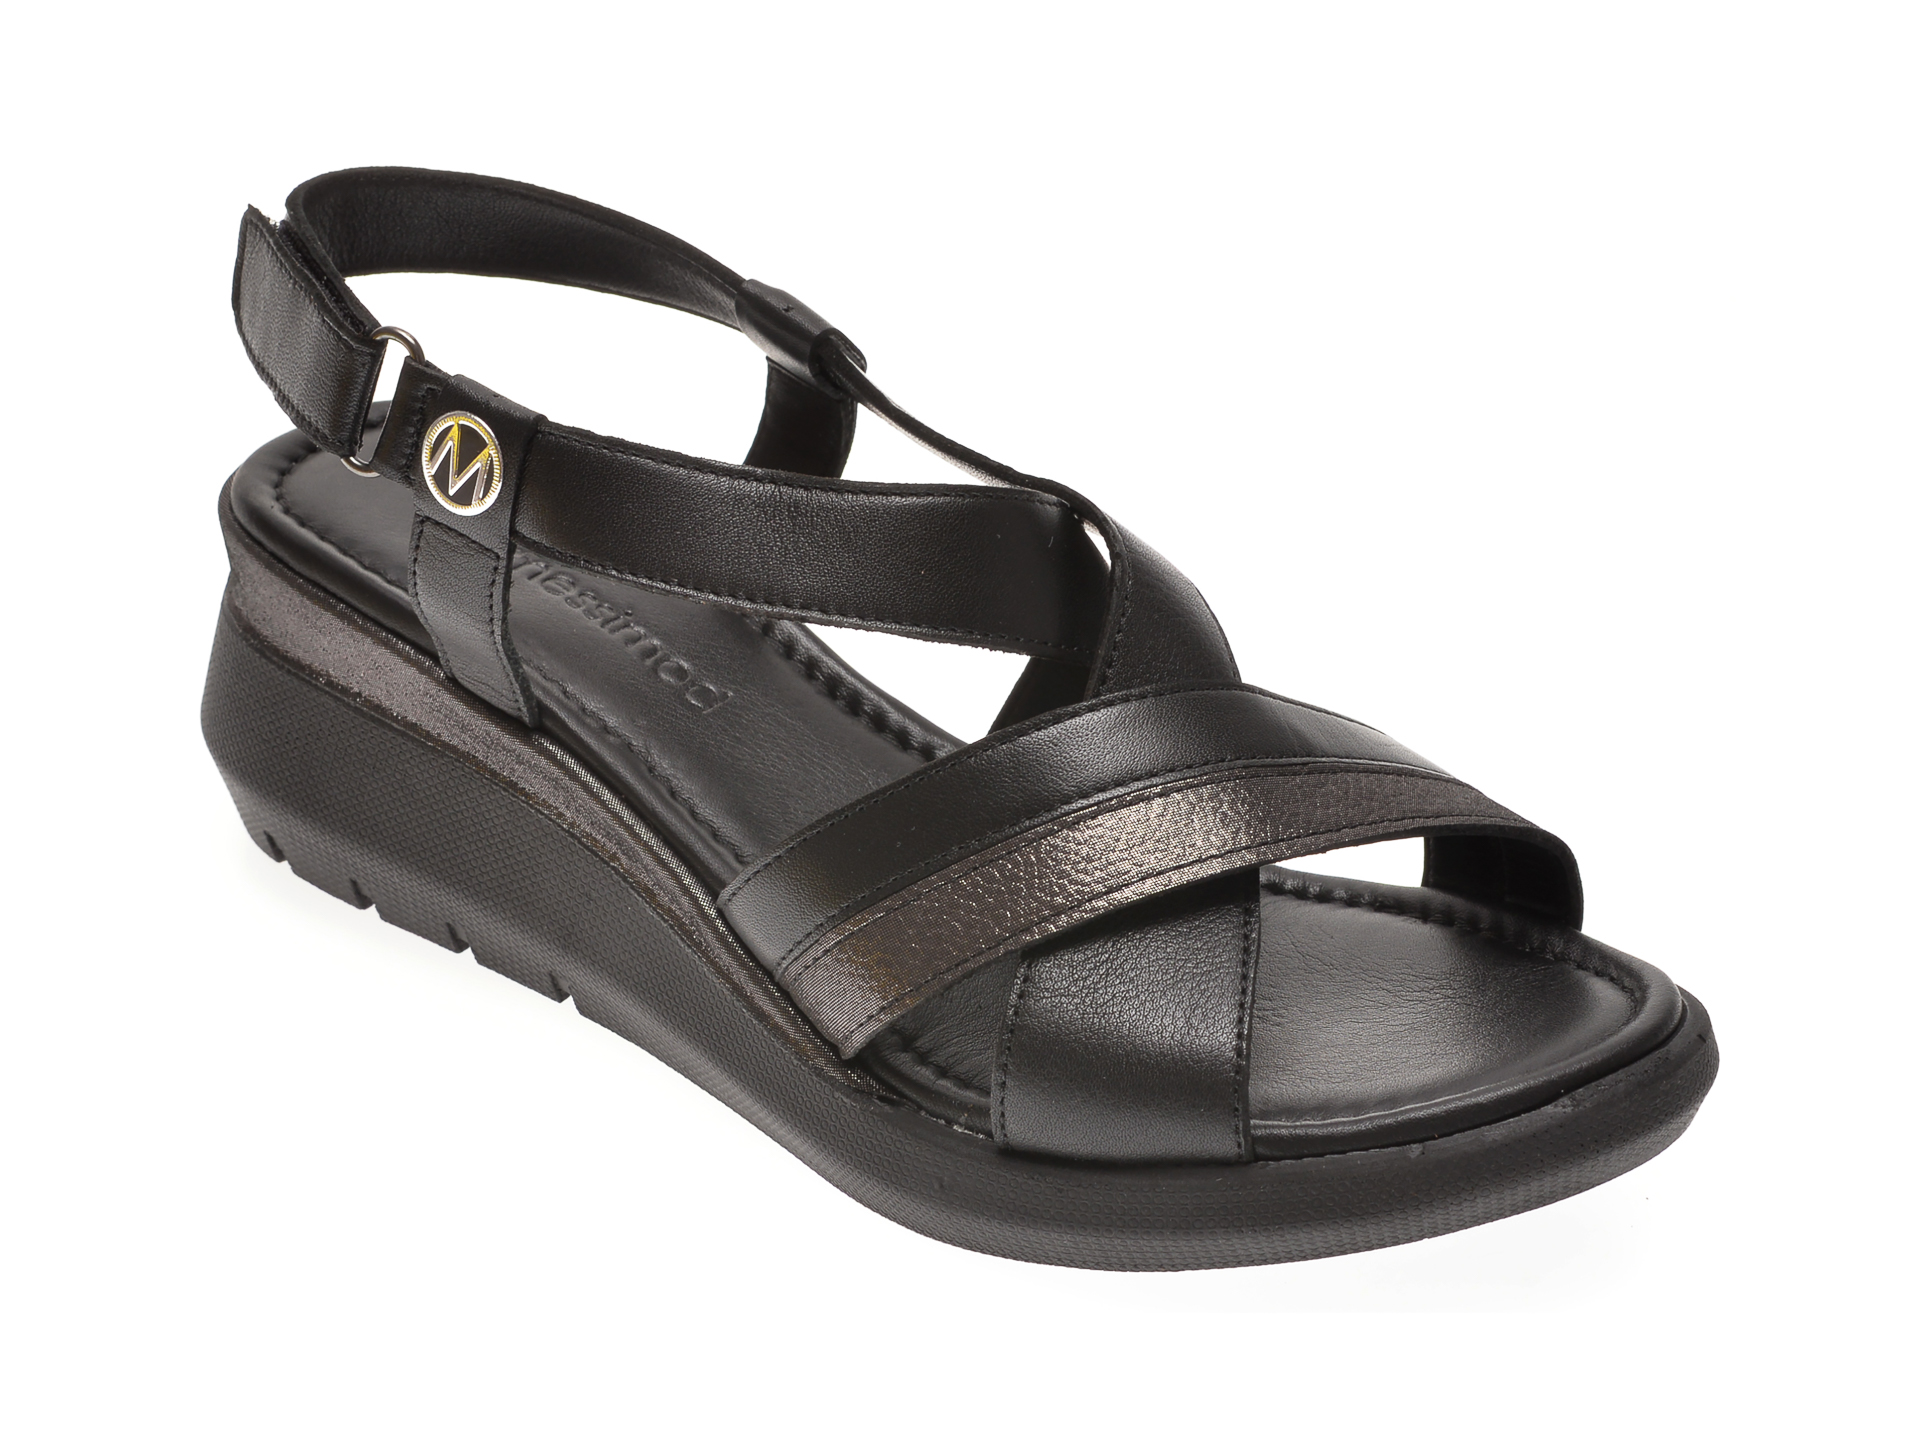 Sandale MESSIMODA negre, 20Y3939, din piele naturala imagine